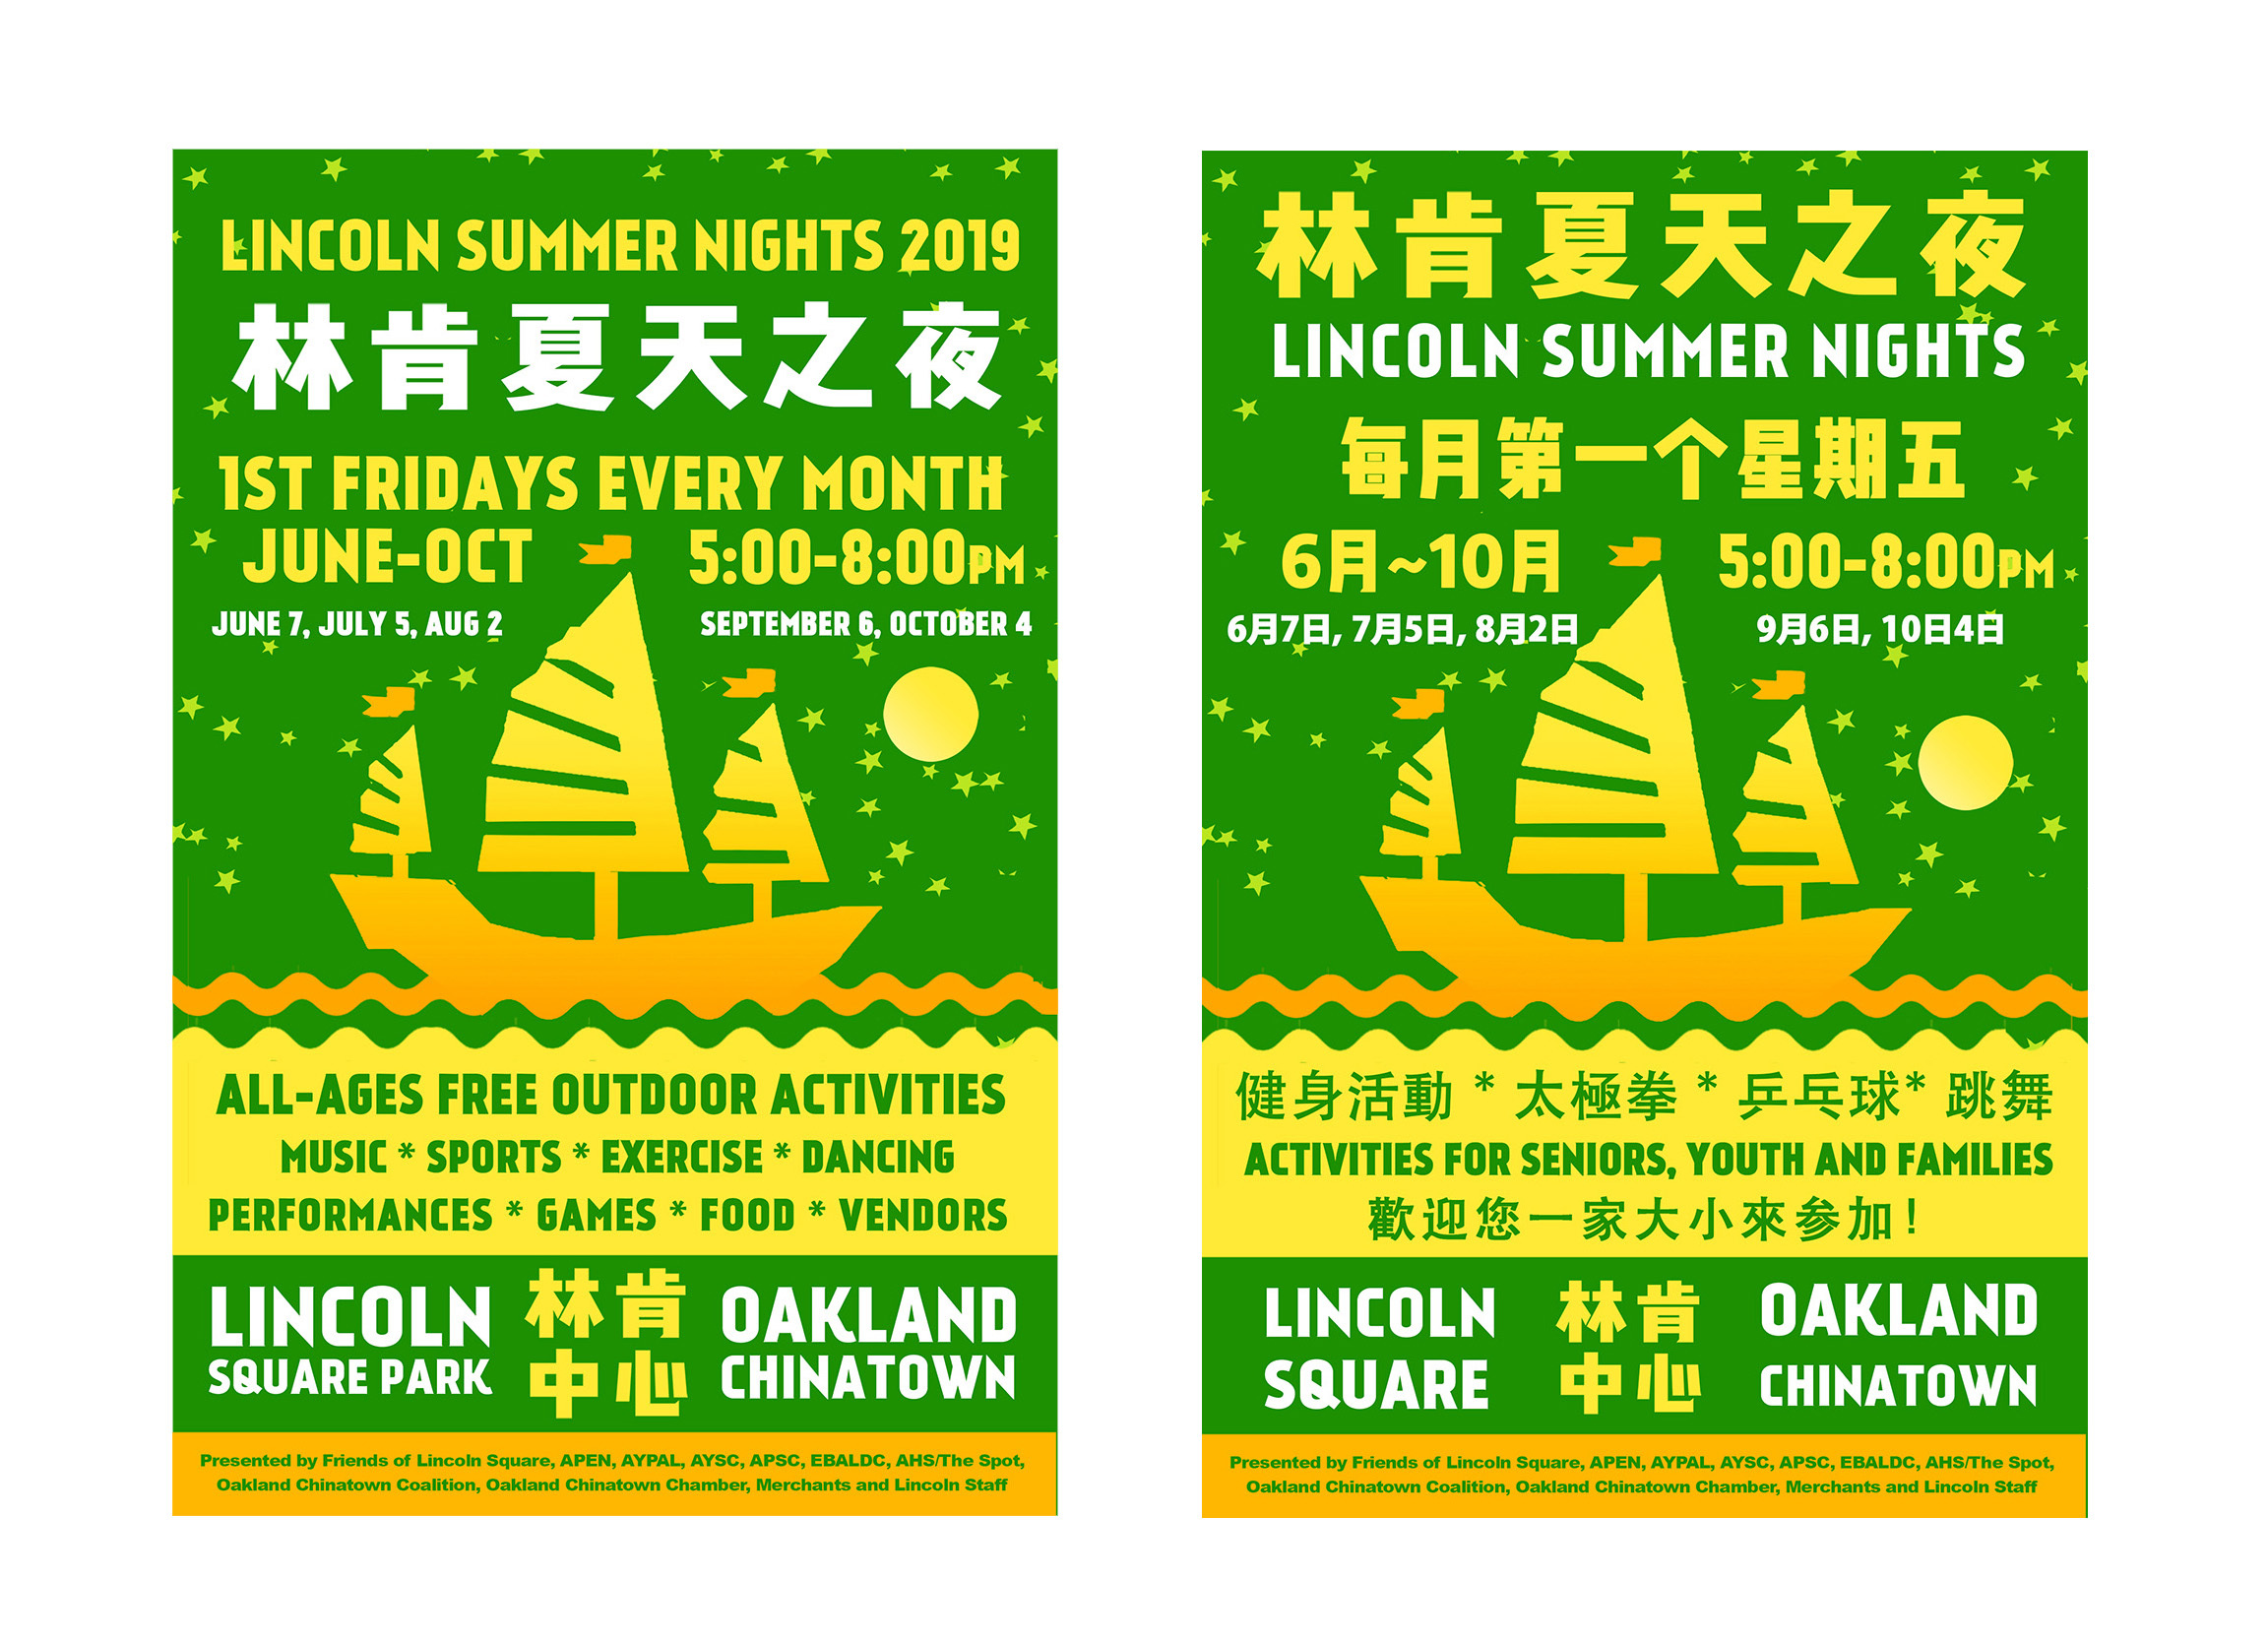 October 4, 2019 Lincoln Summer Nights - Downtown Oakland Specific Plan Image